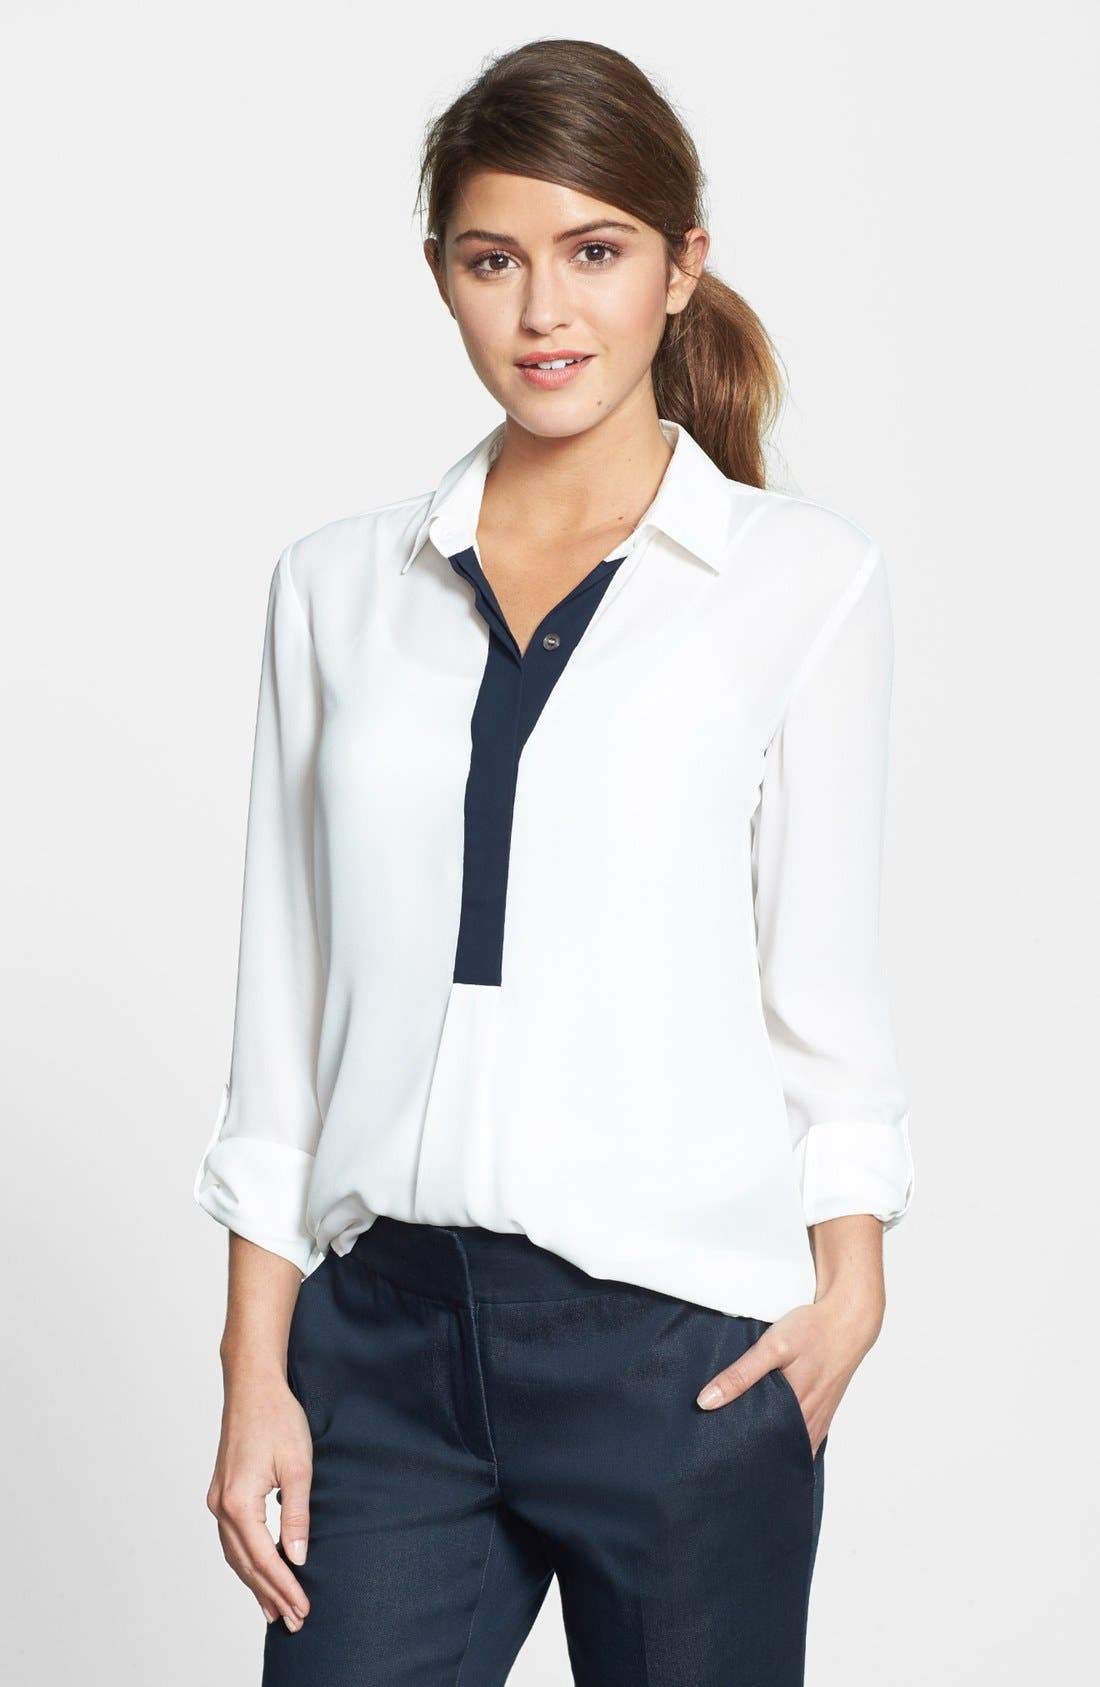 Alternate Image 1 Selected - Vince Camuto Contrast Trim Roll Sleeve Blouse (Regular & Petite)